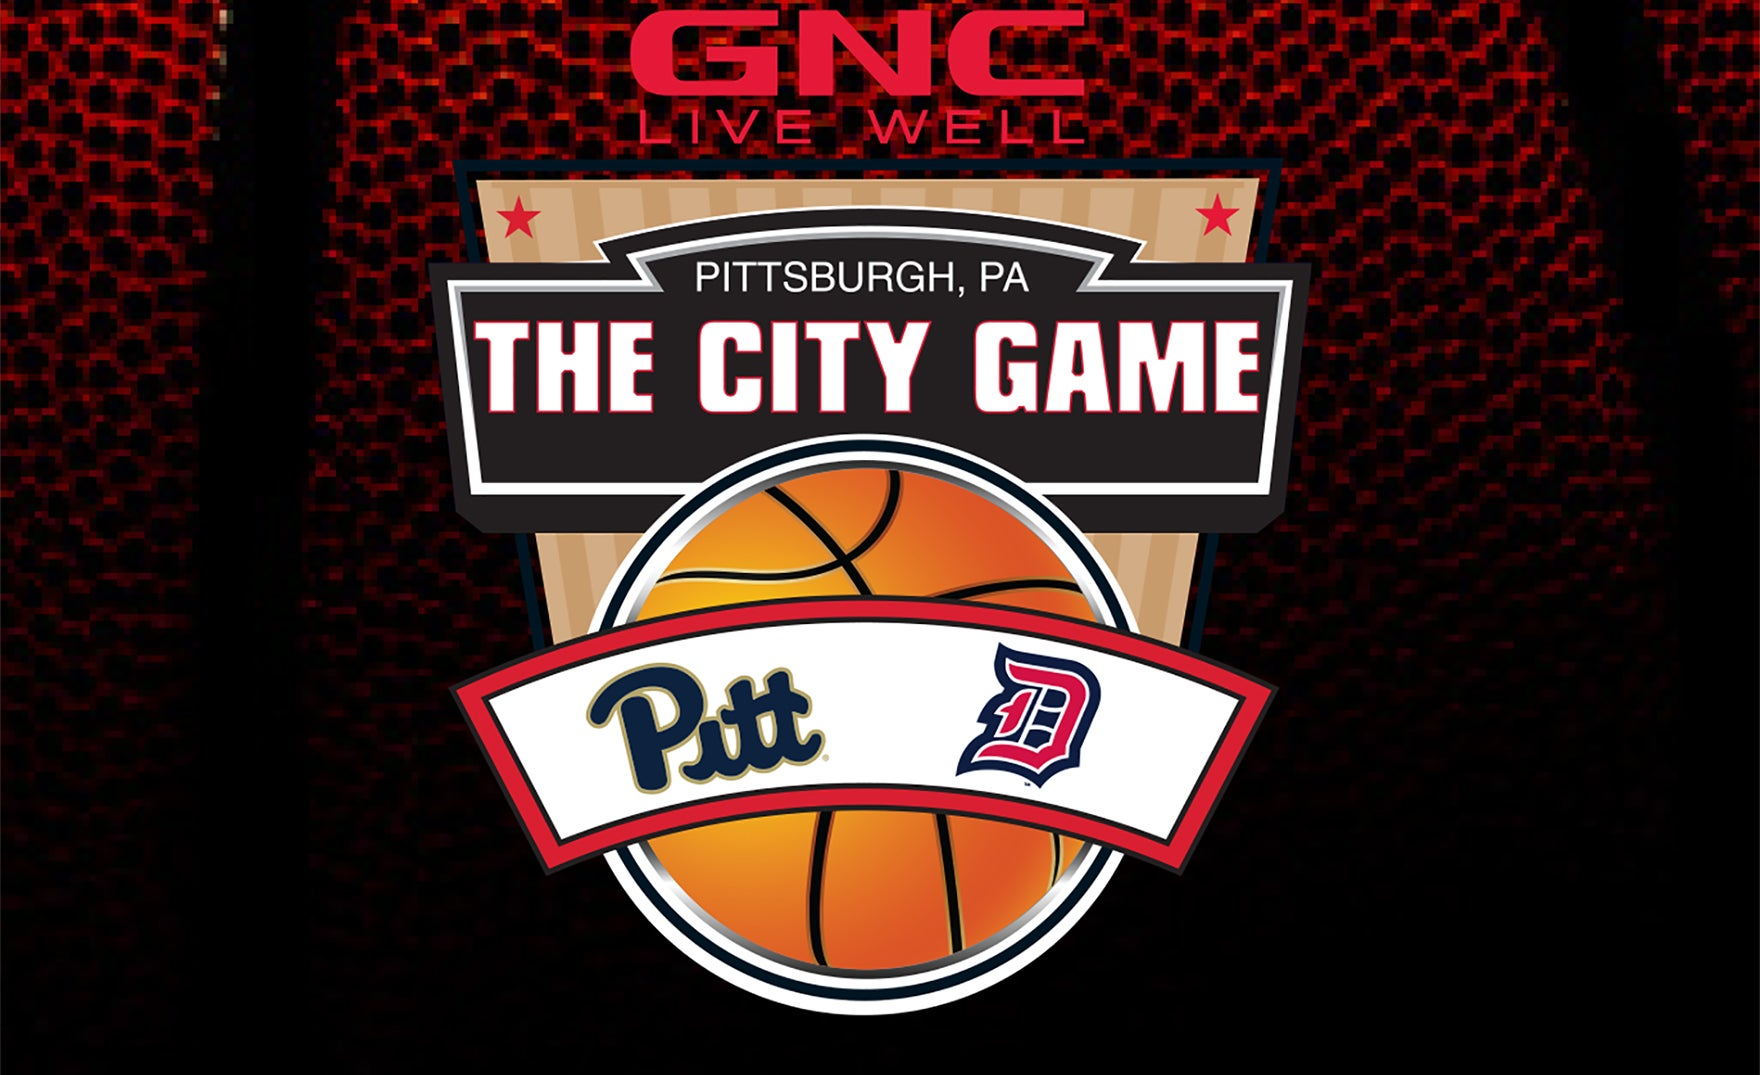 GNC Presents The City Game